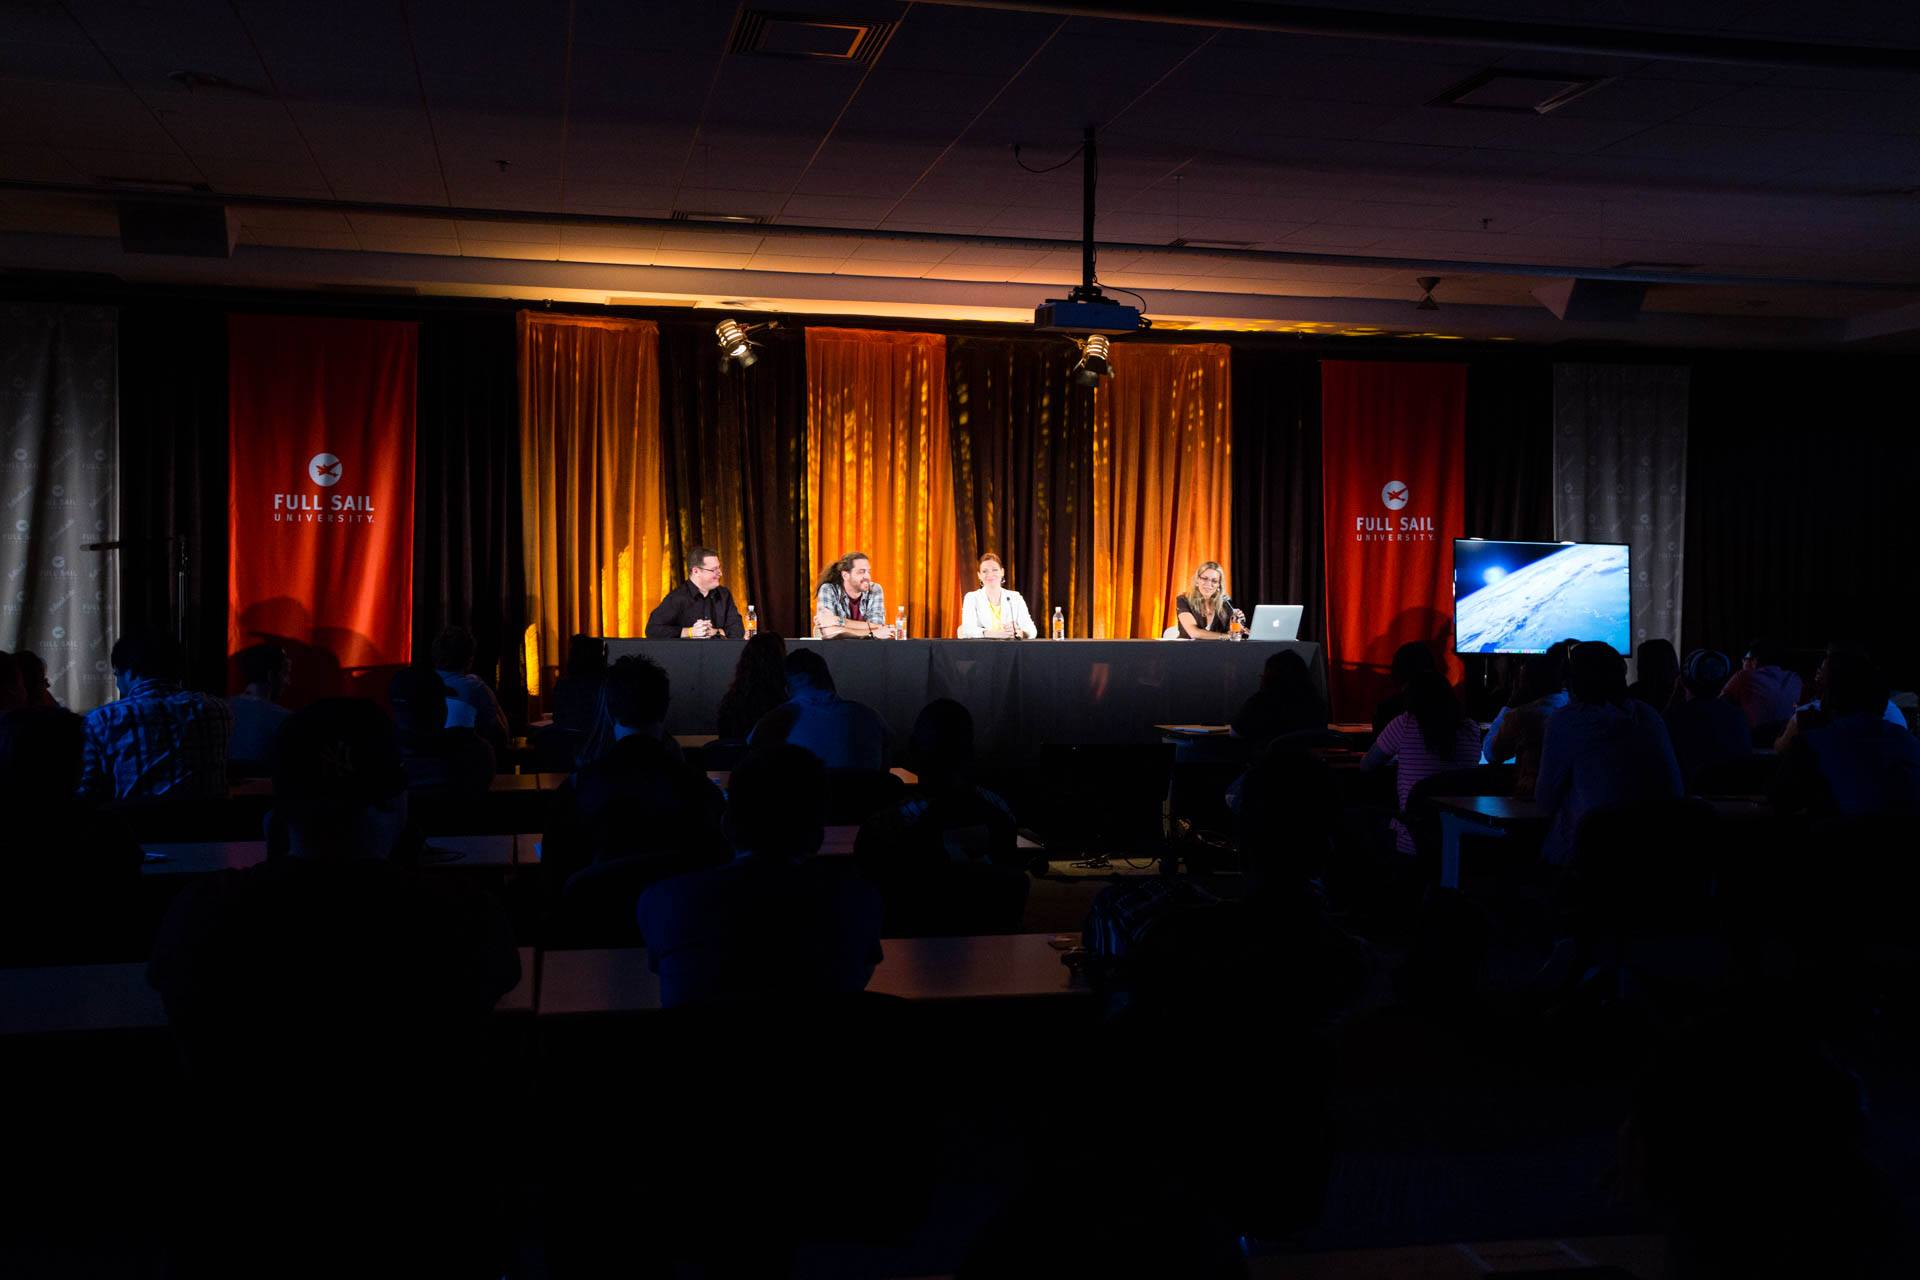 David C. Glass on a panel discussion at Full Sail University Hall of Fame